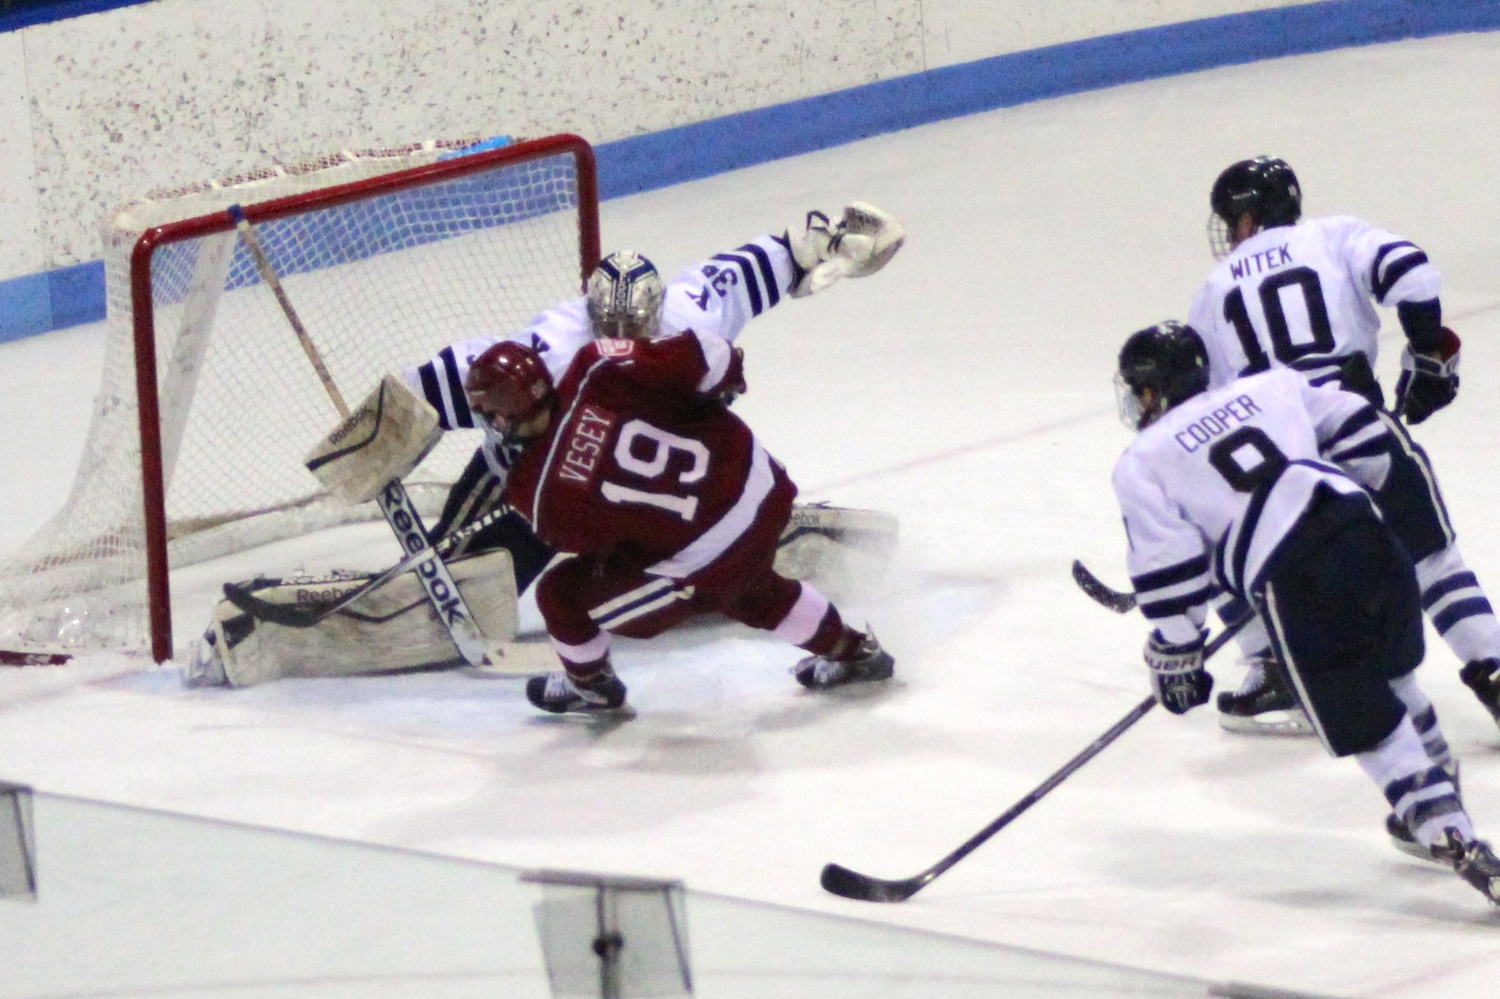 Junior forward Jimmy Vesey beat Yale goaltender Alex Lyon in the second overtime period to send the Crimson into the ECAC tournament semifinals.